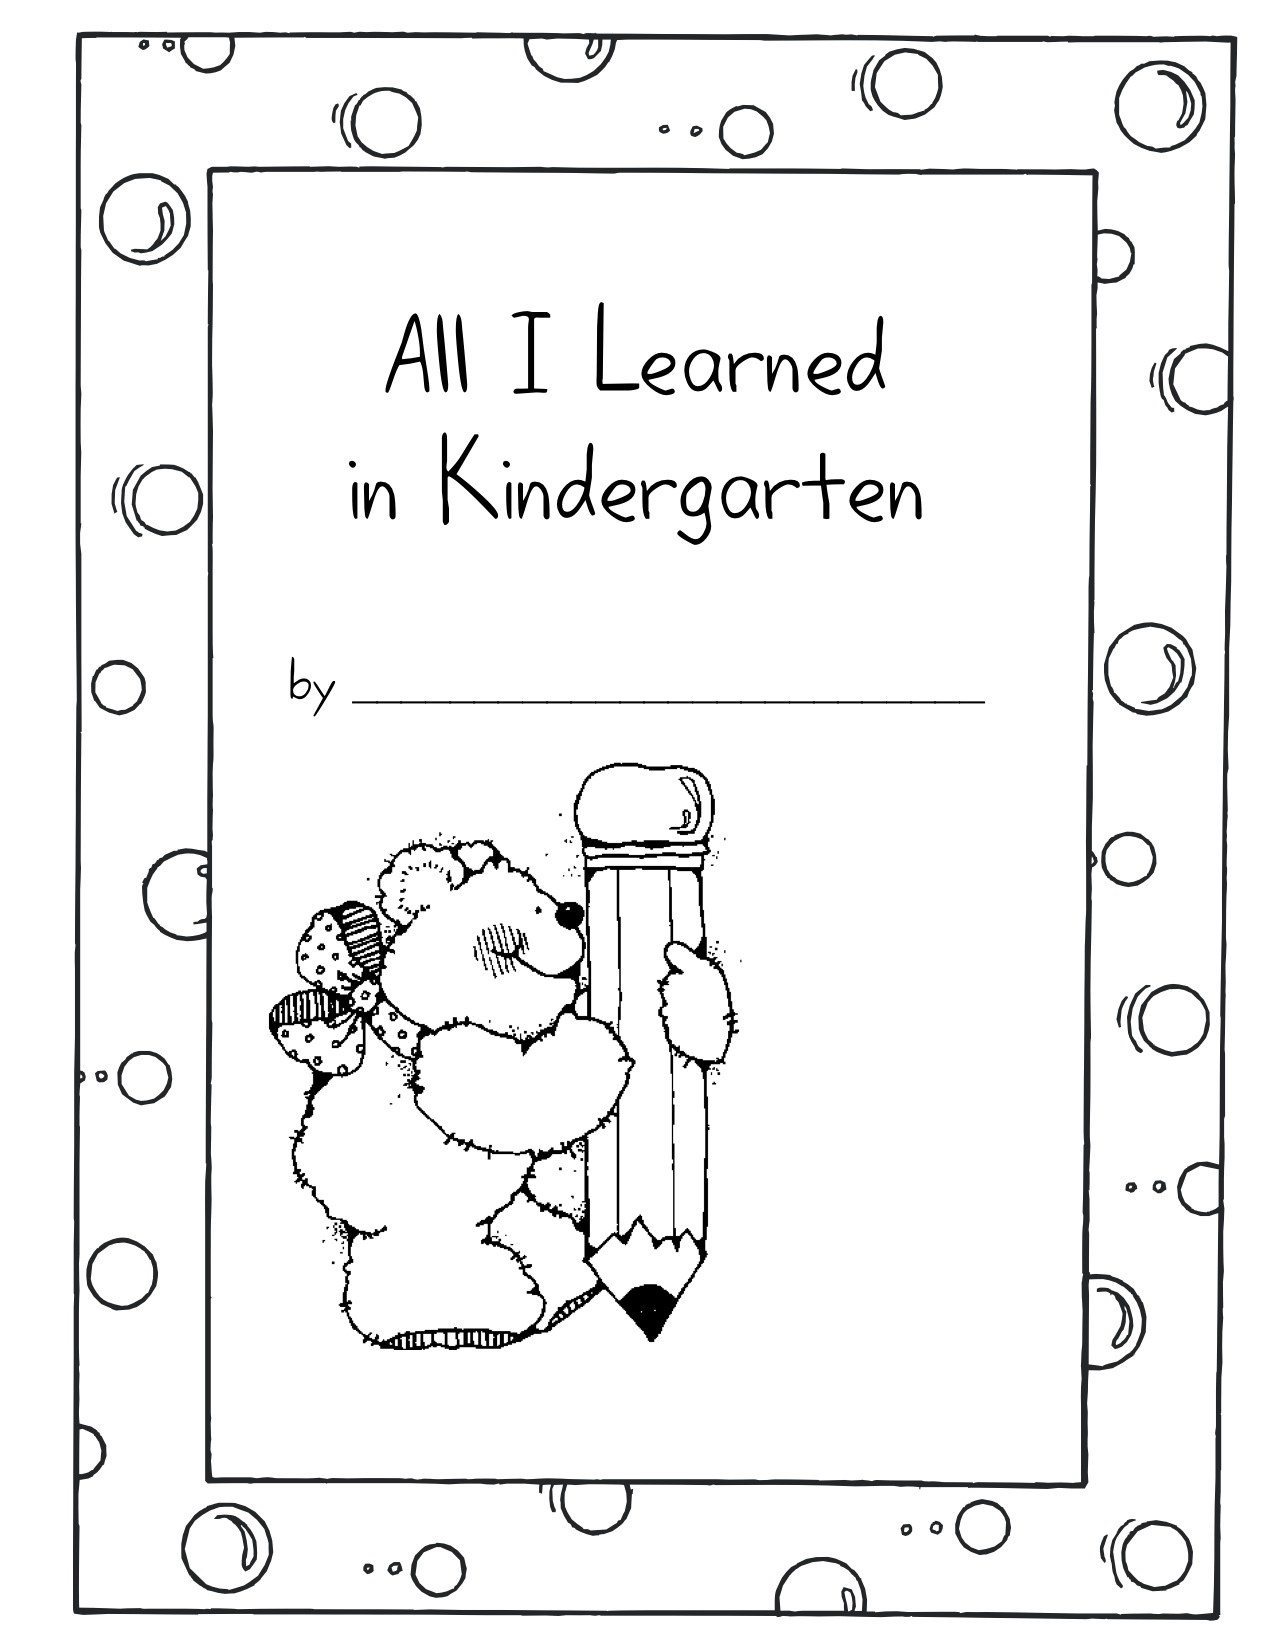 Printable Handwriting Book Cover ~ All i learned in kindergarten nana